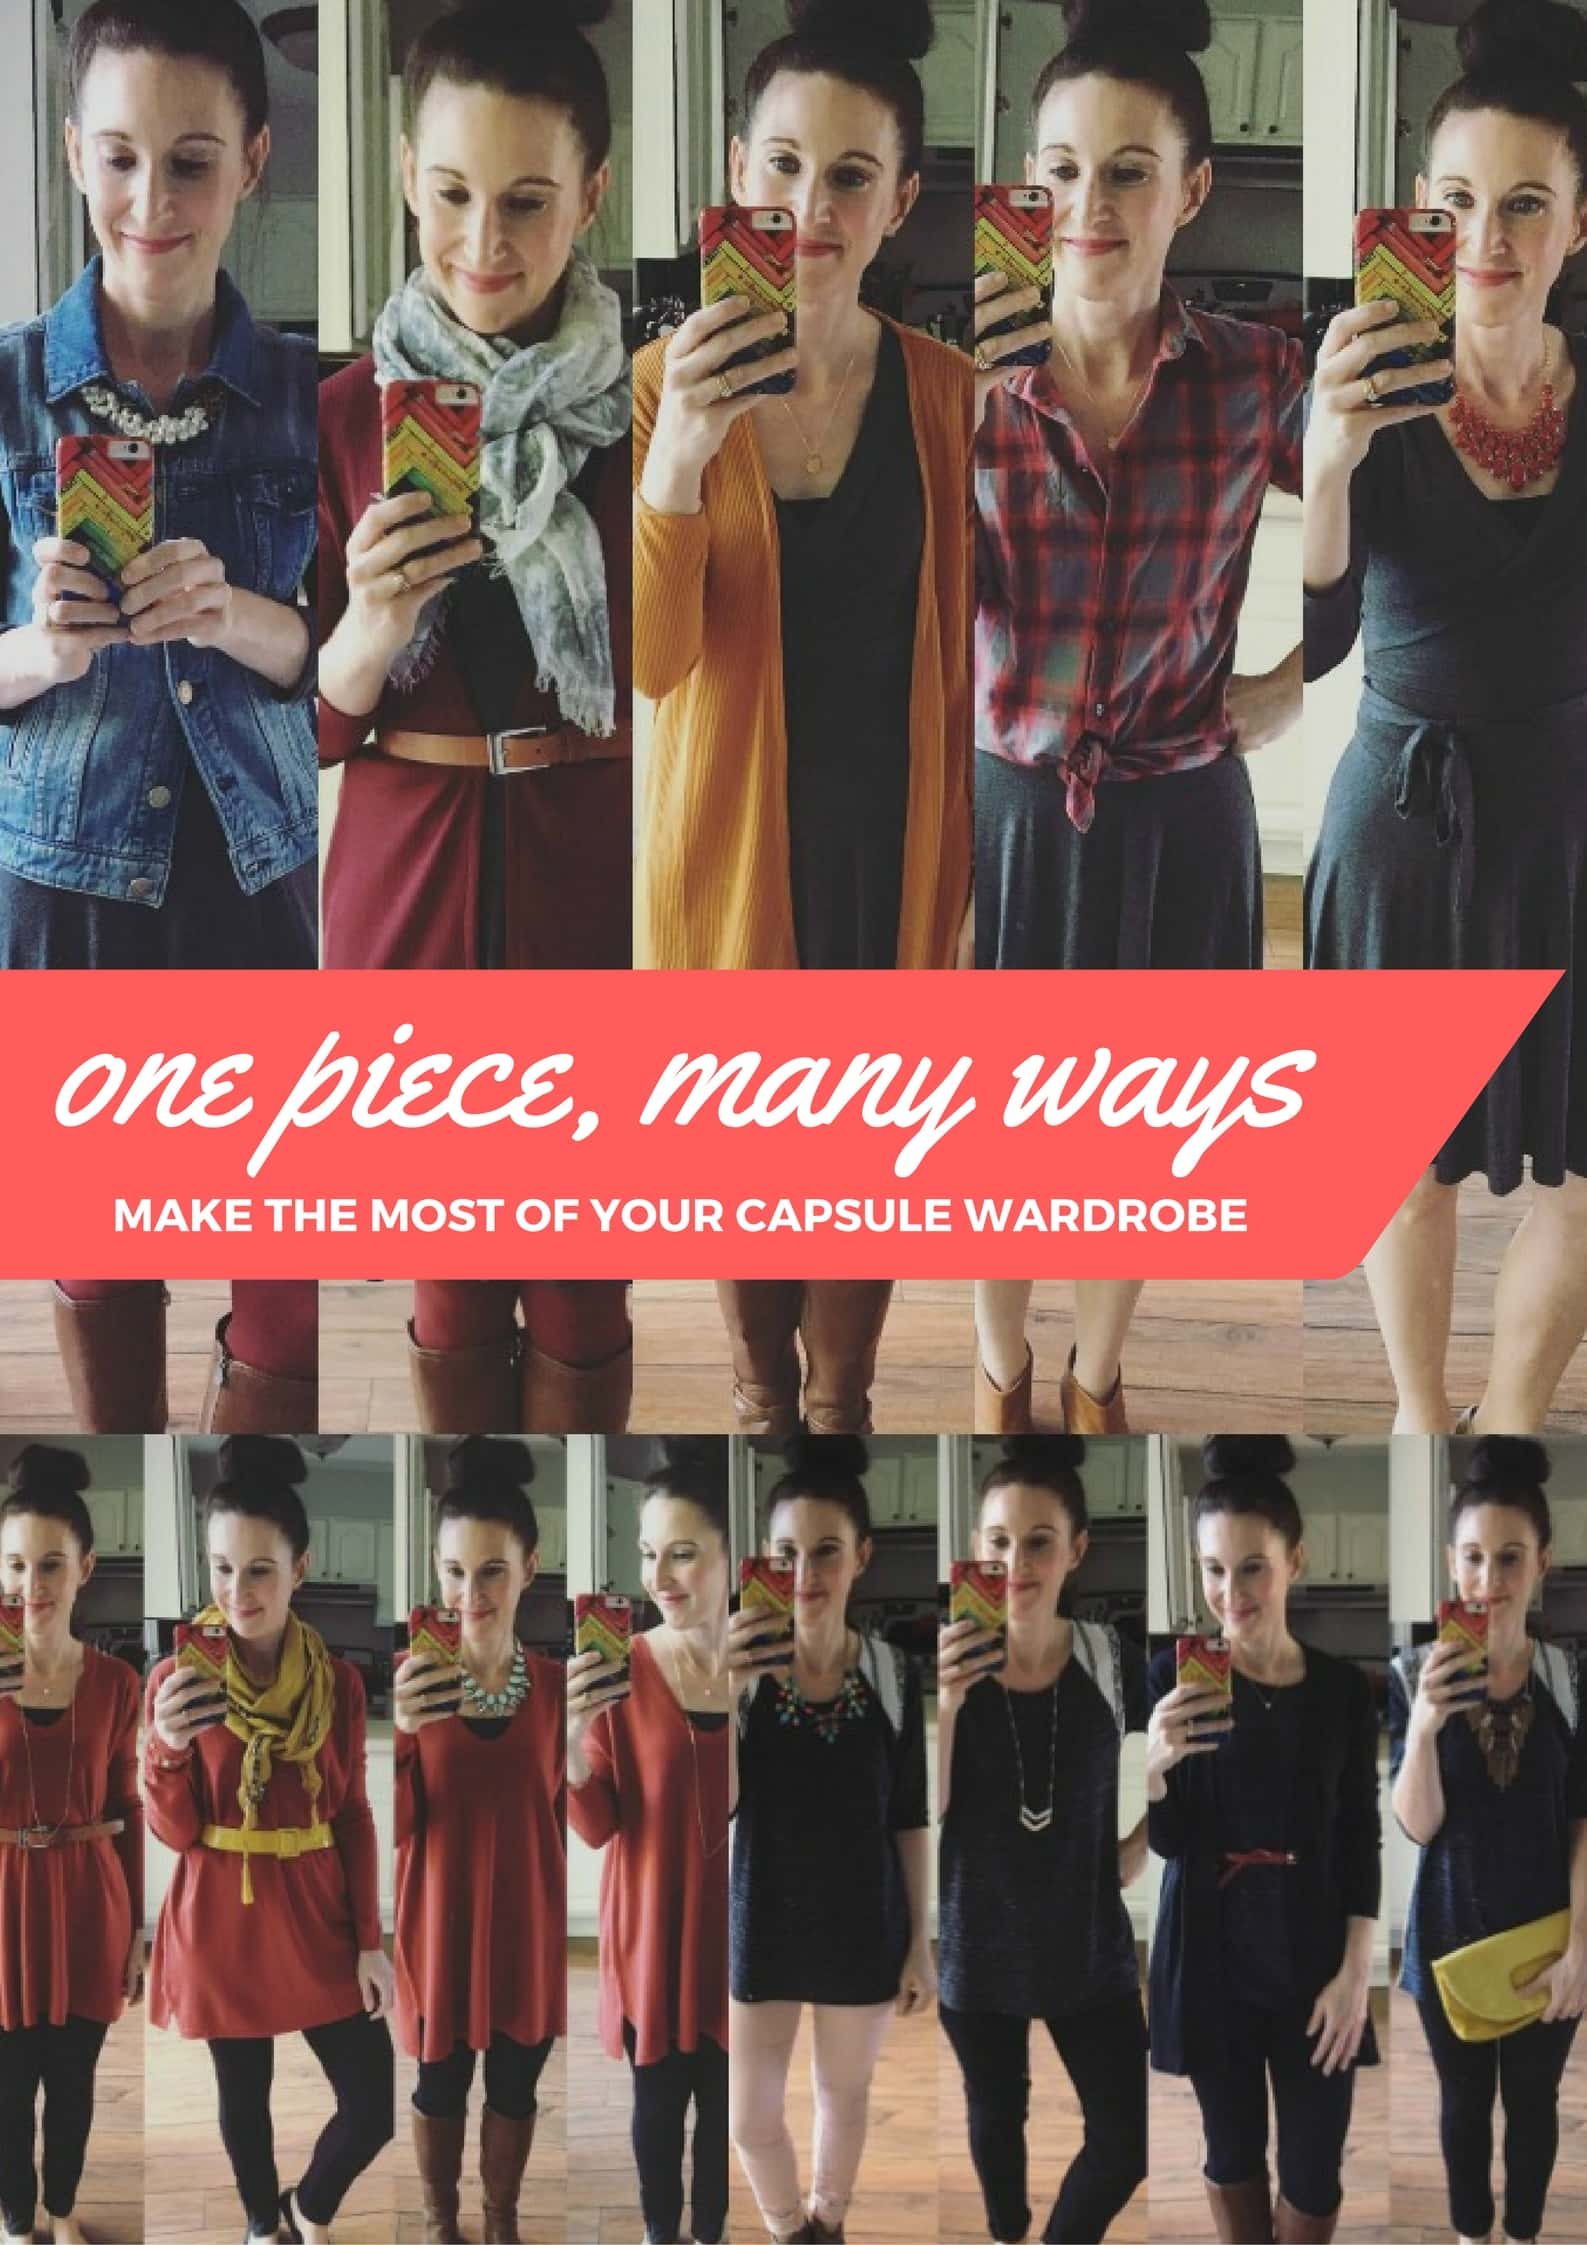 One Piece, Many Ways- Make the Most of a Capsule Wardrobe from MomAdvice.com